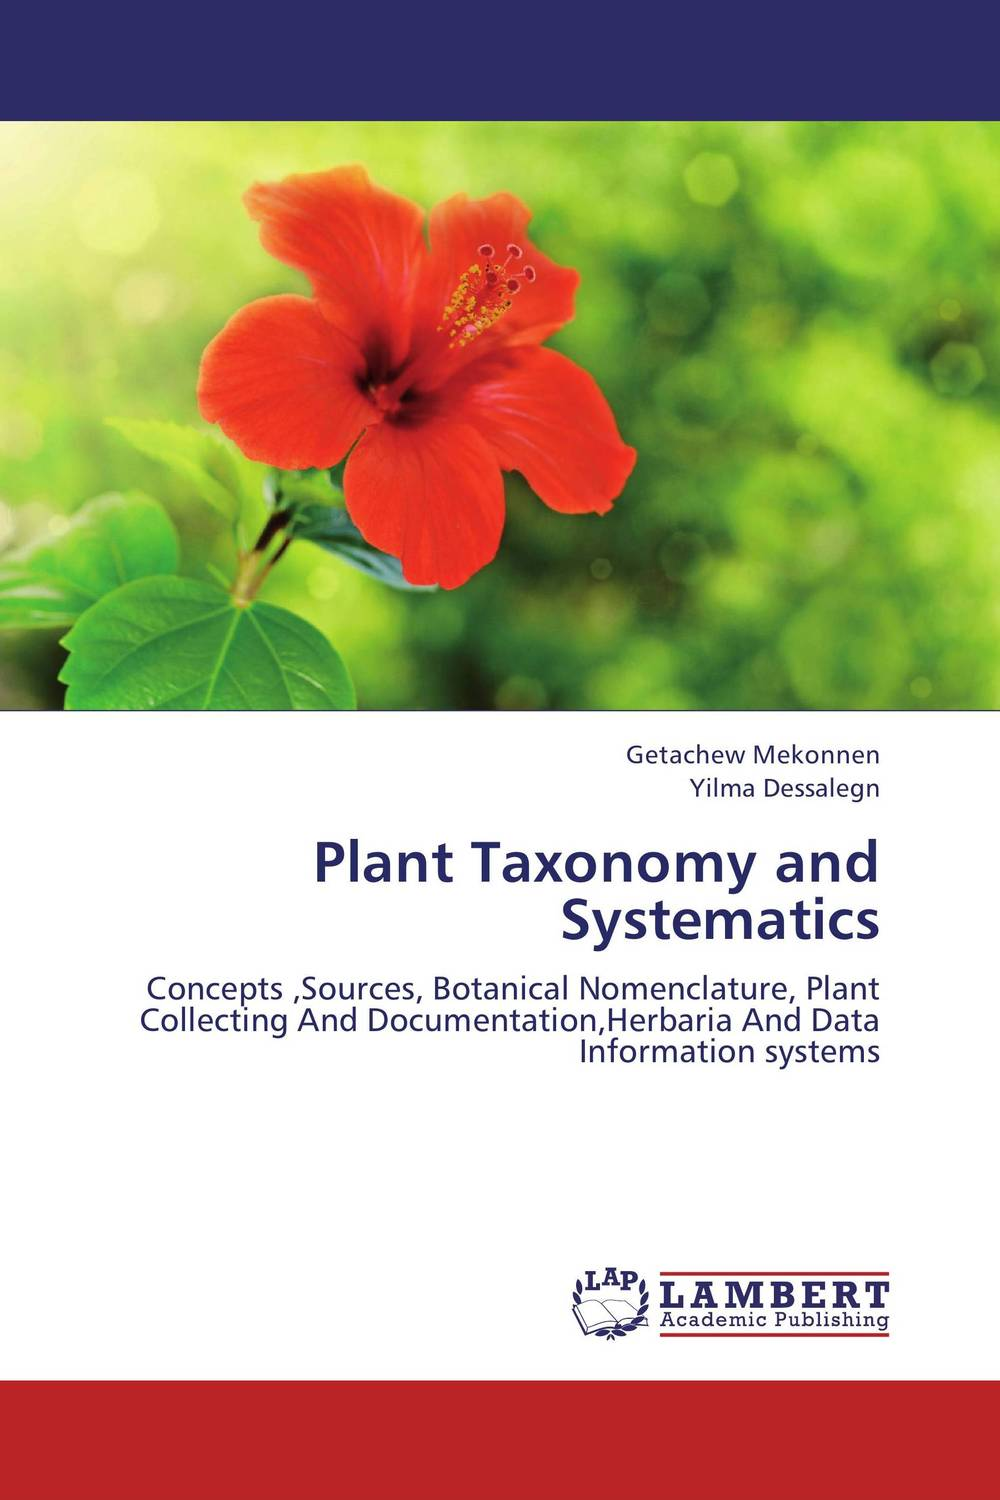 Plant Taxonomy and Systematics